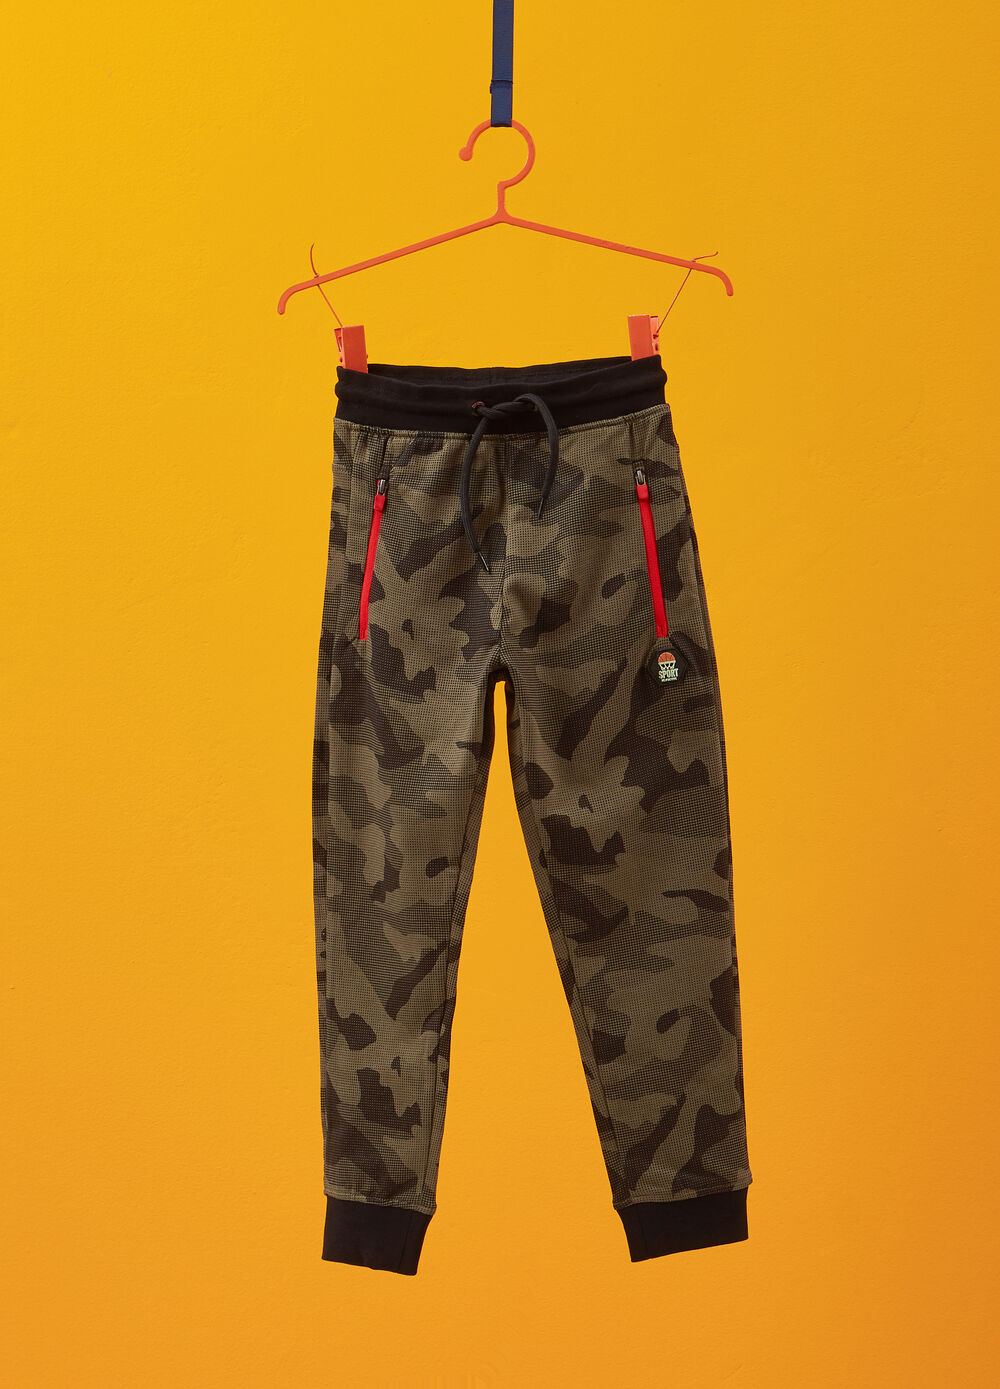 100% cotton trousers with camouflage pattern